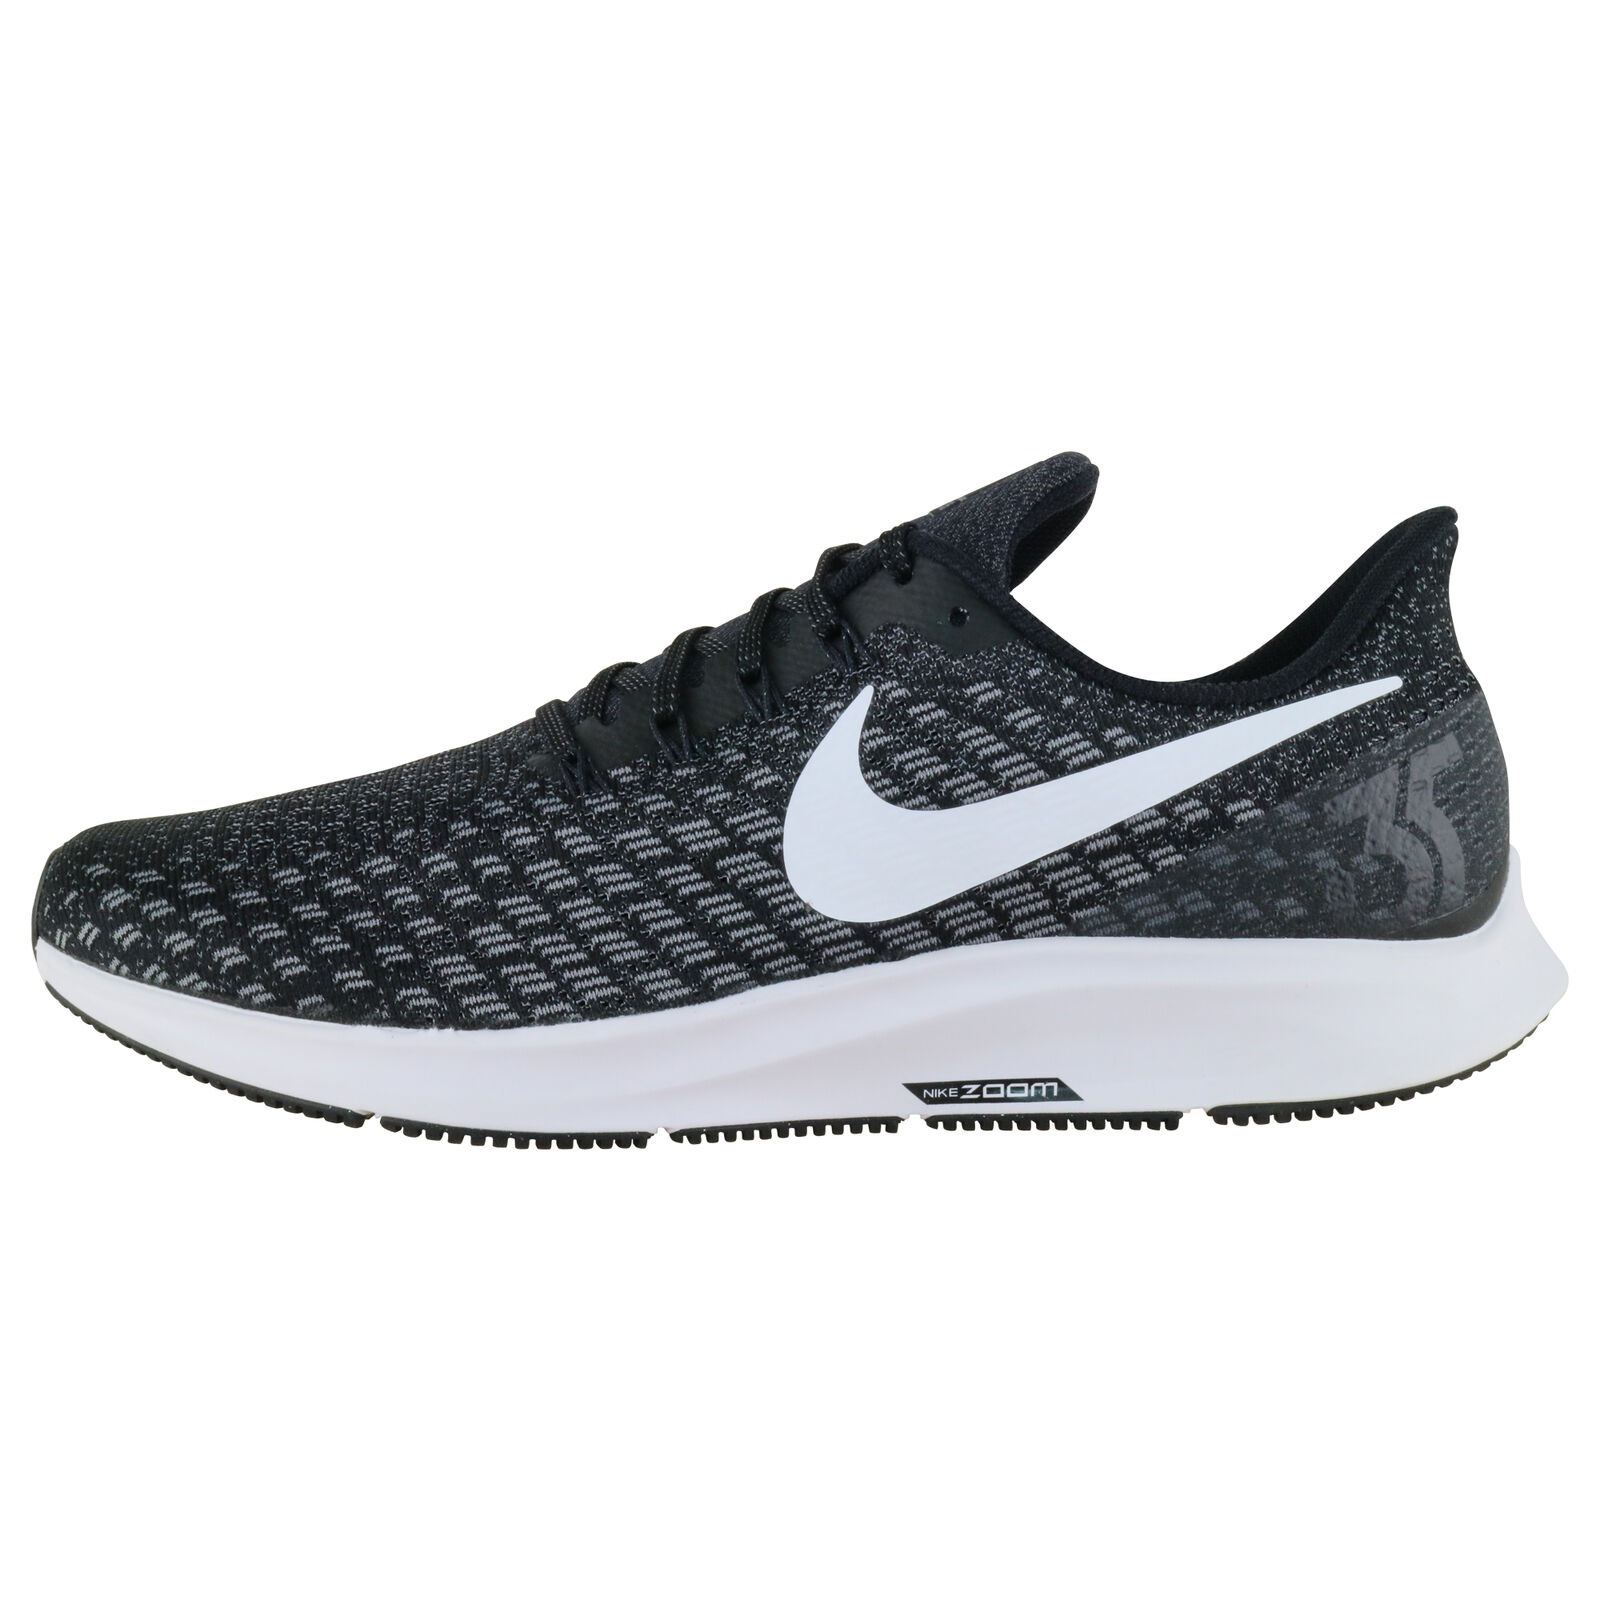 differently 4f1da c60fa Nike Air Zoom Pegasus 35-Messieurs neutre Chaussures De De De Course 942851- 001 c7f702